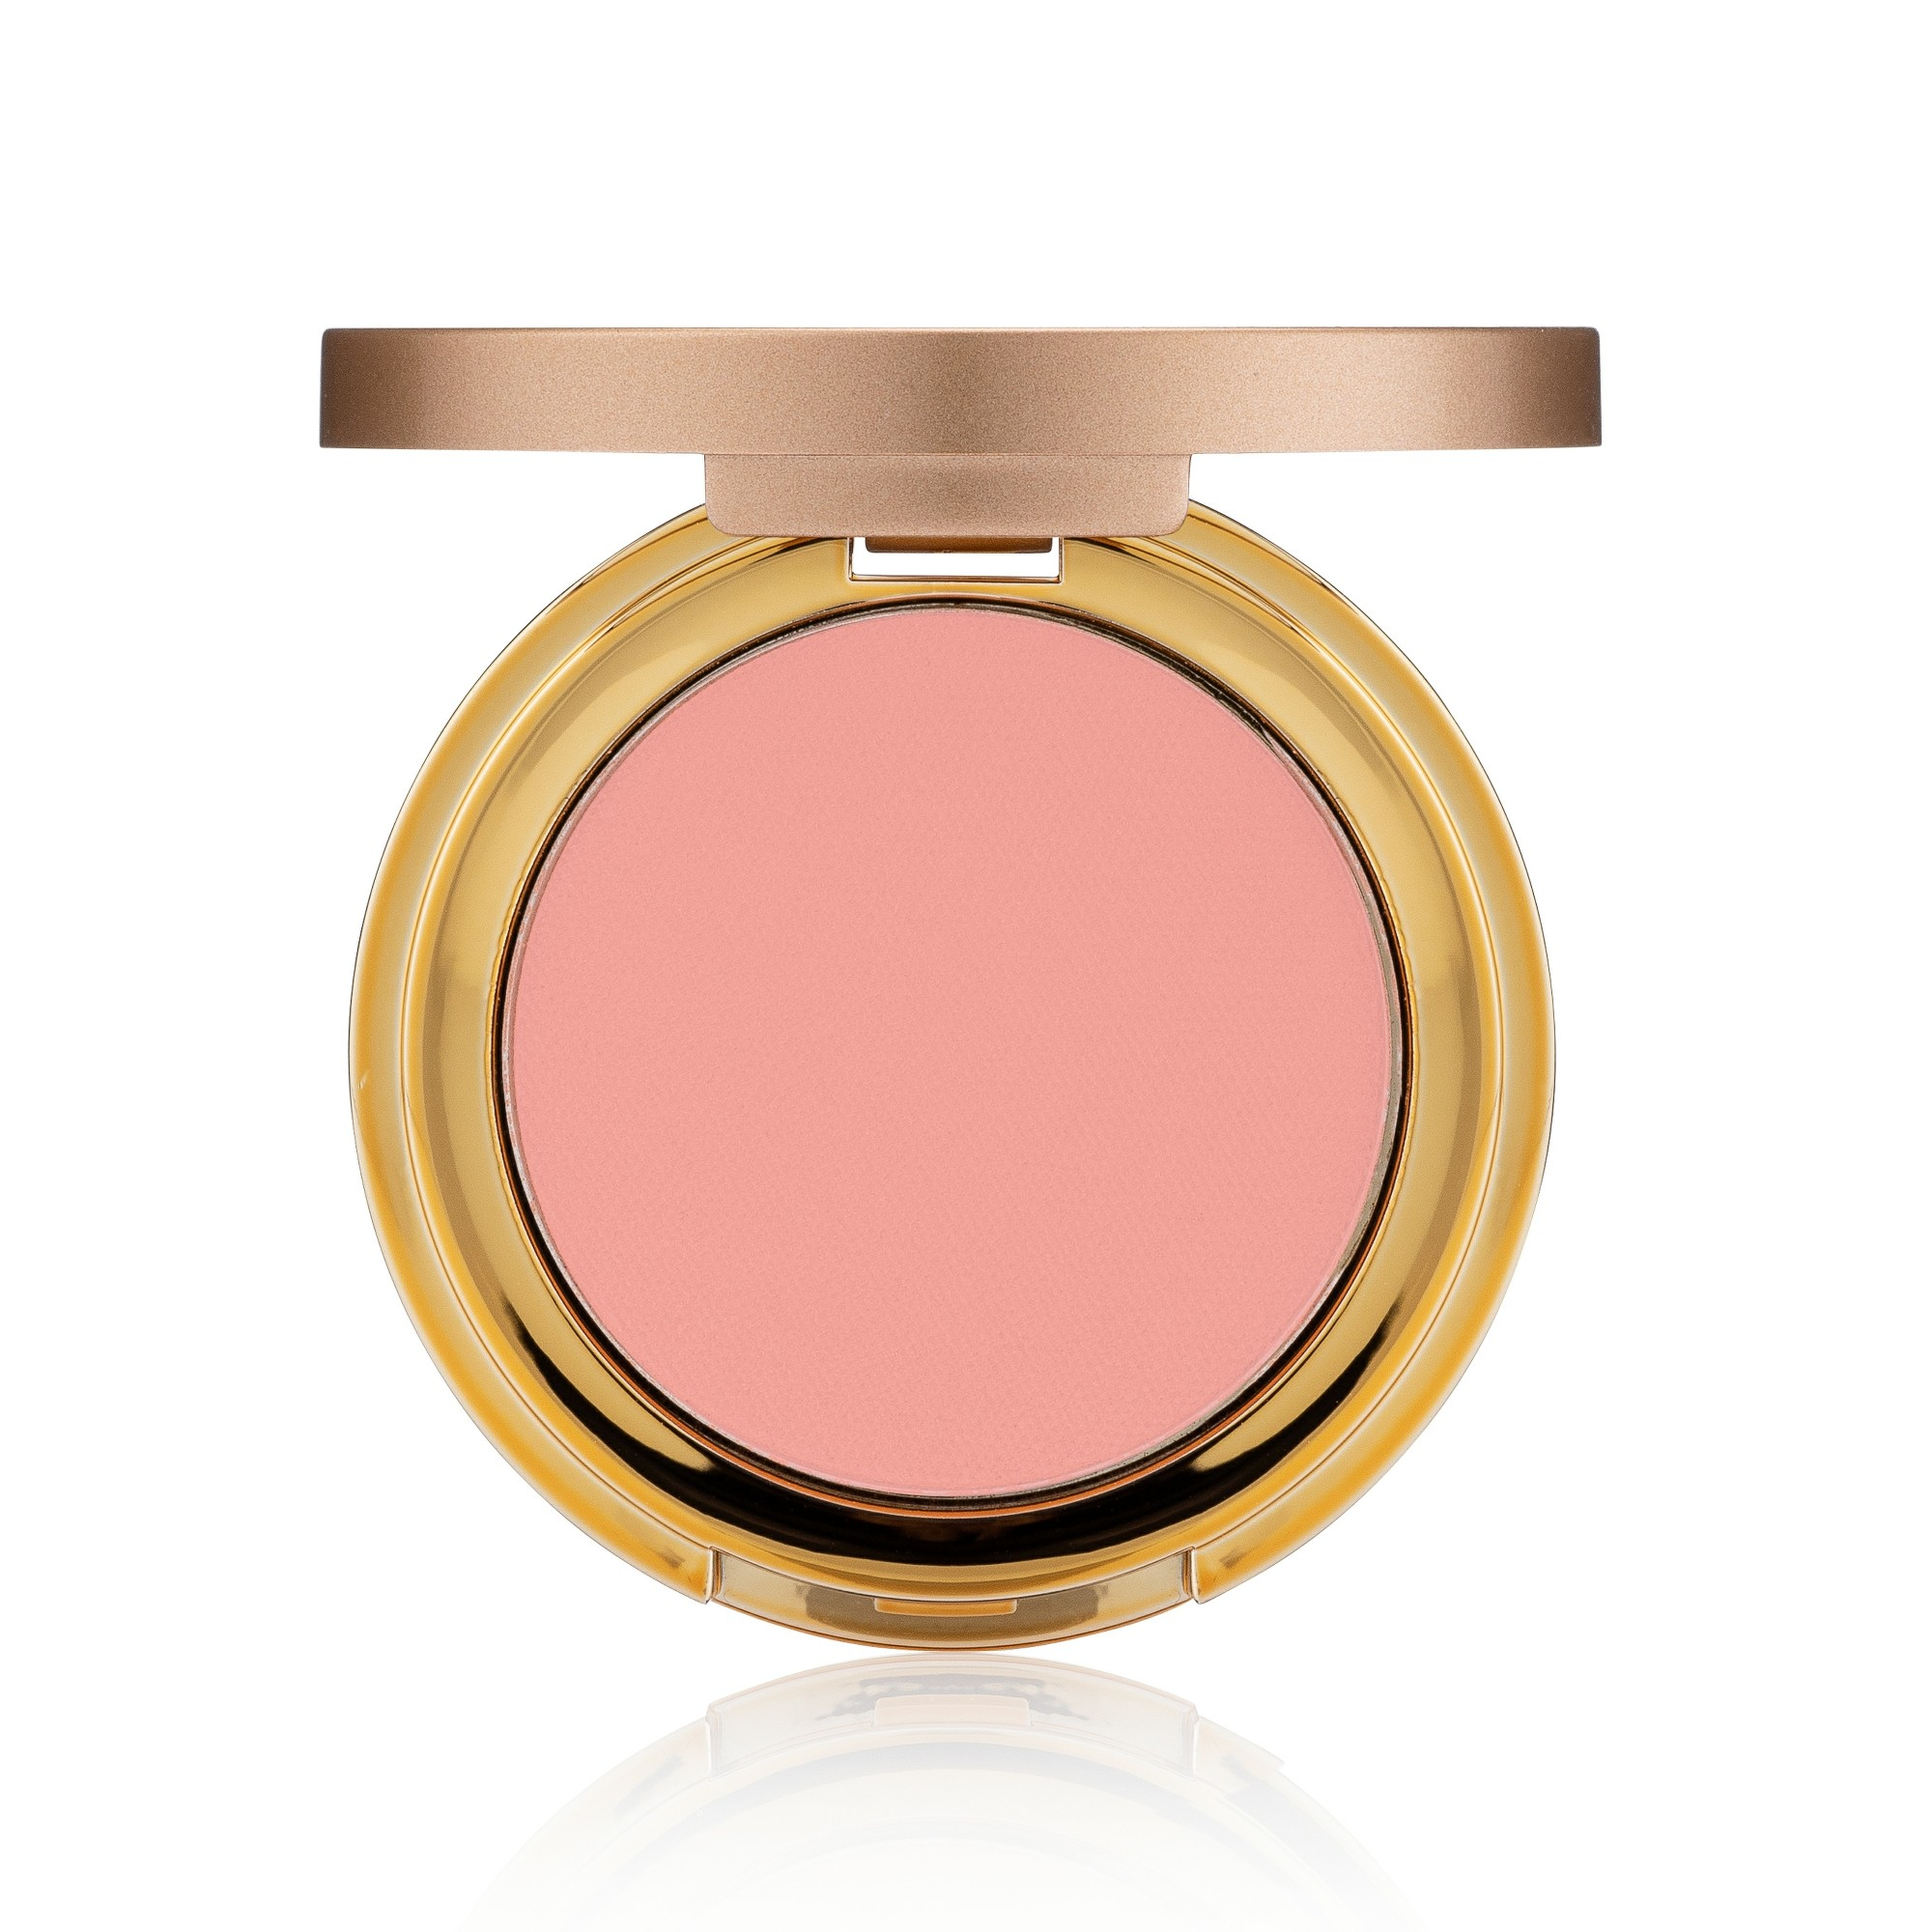 EWG VERIFIED™ Papaya in new gold compact